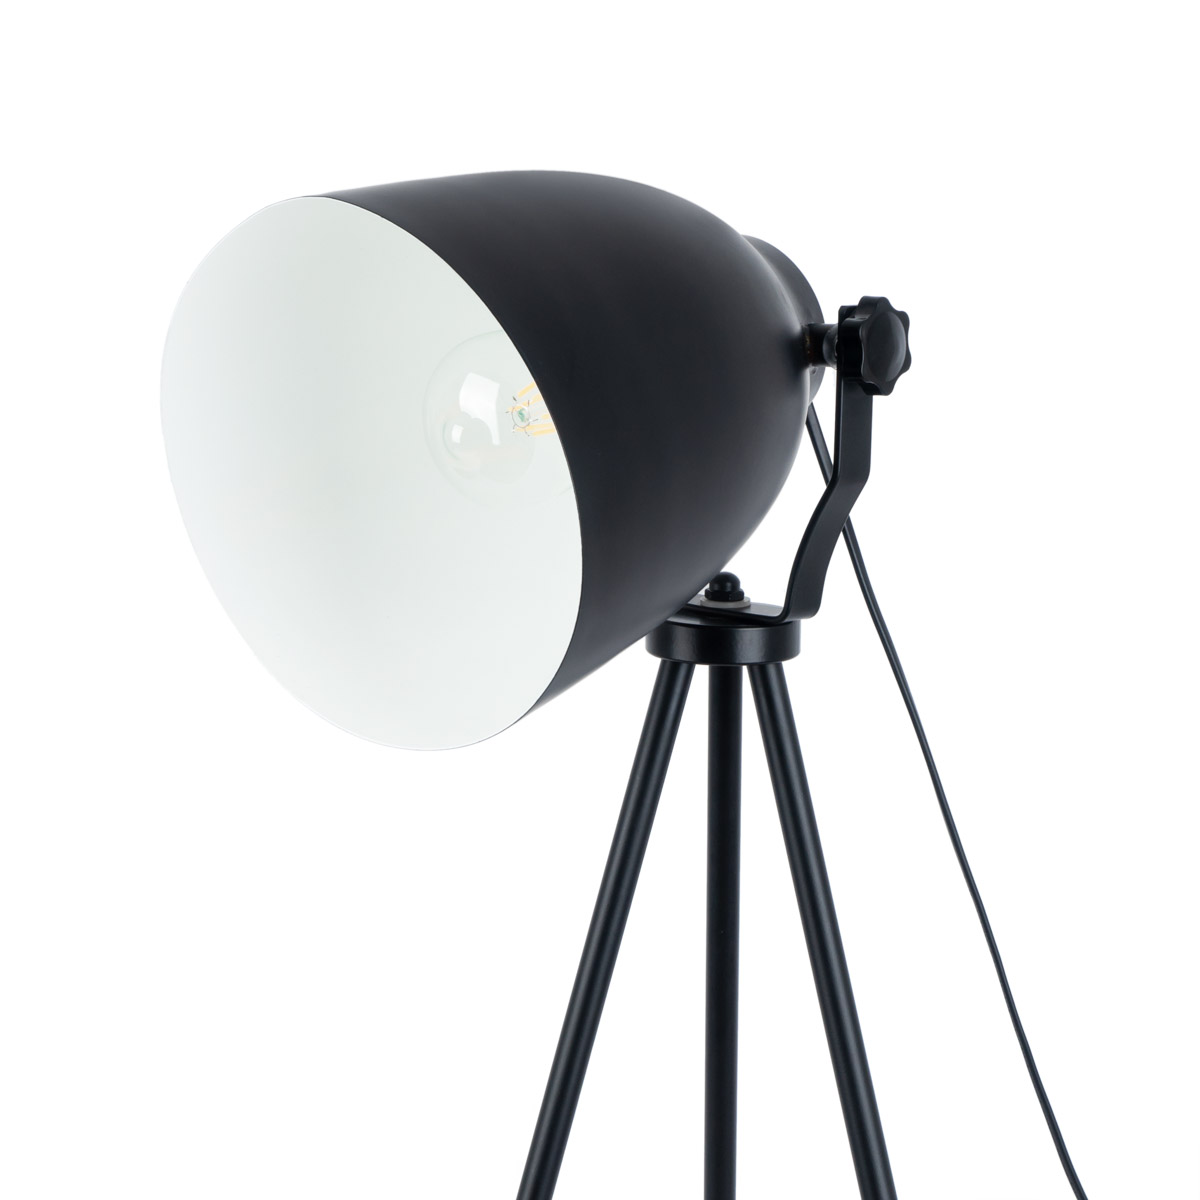 Floor lamp Click, metal, color black, 135x56x56 cm